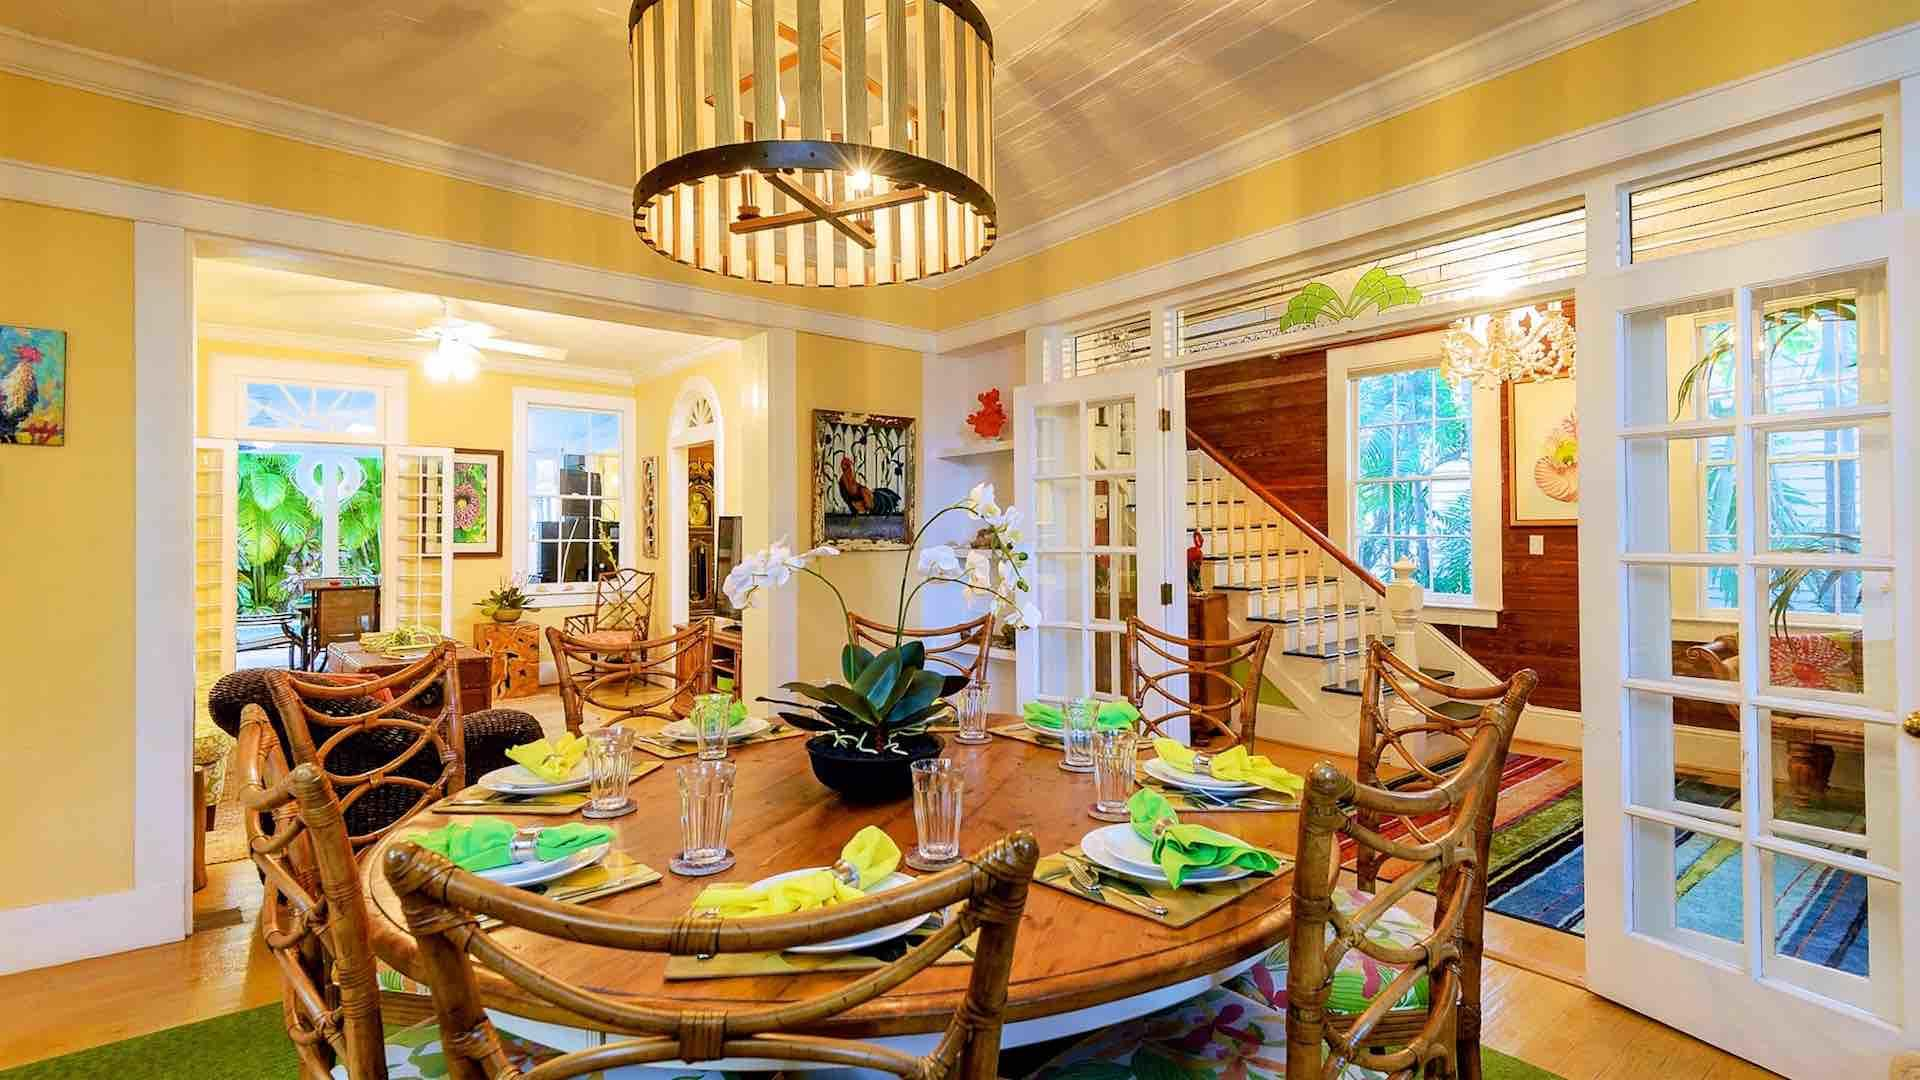 The formal dining room has a large circular dining table that seats up to ten.